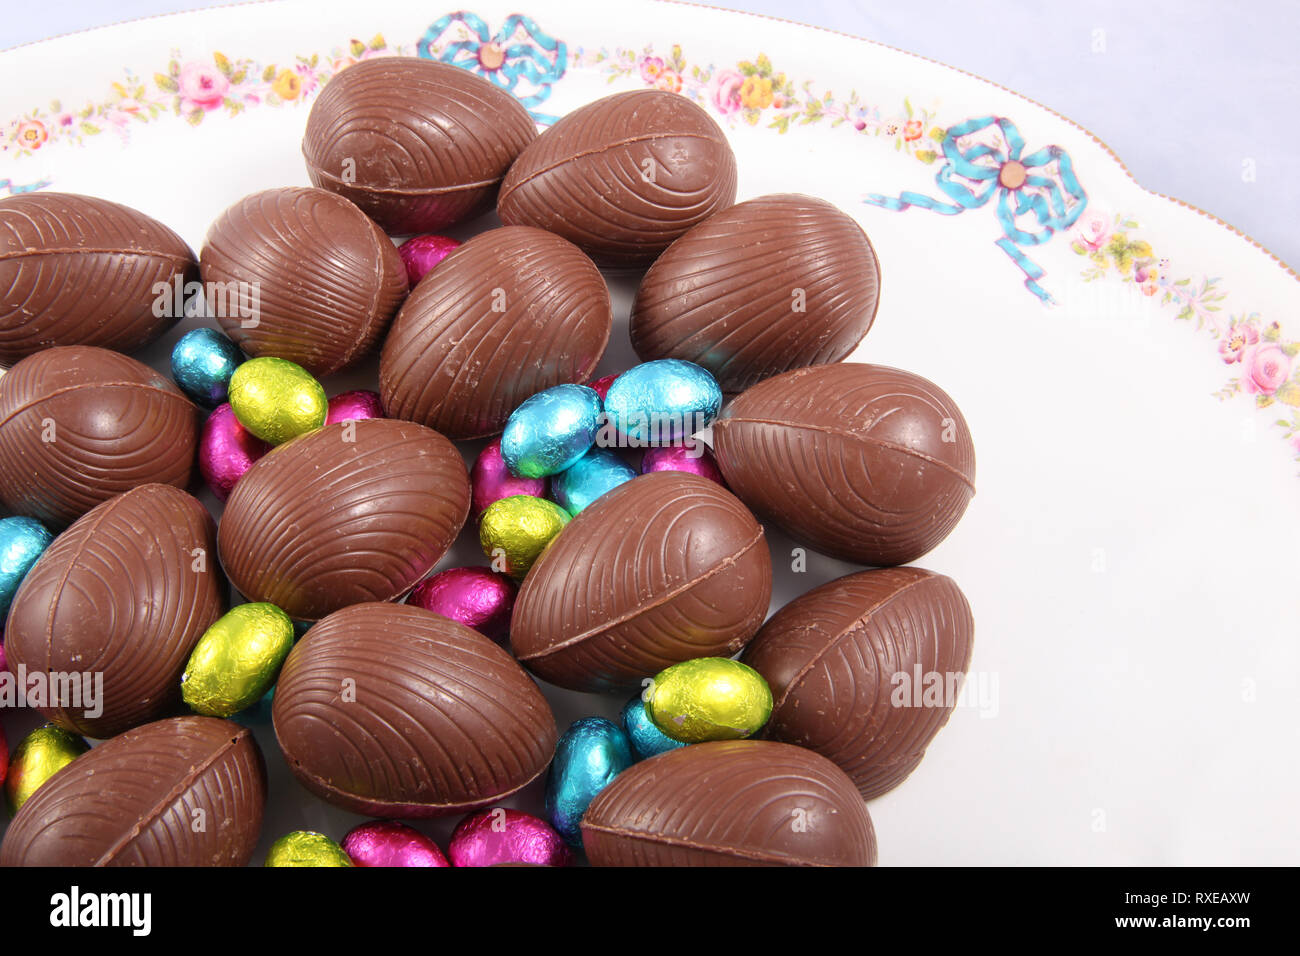 Chocolate easter eggs & colourful foil wrapped eggs on a white plate with a traditional flower design. Stock Photo